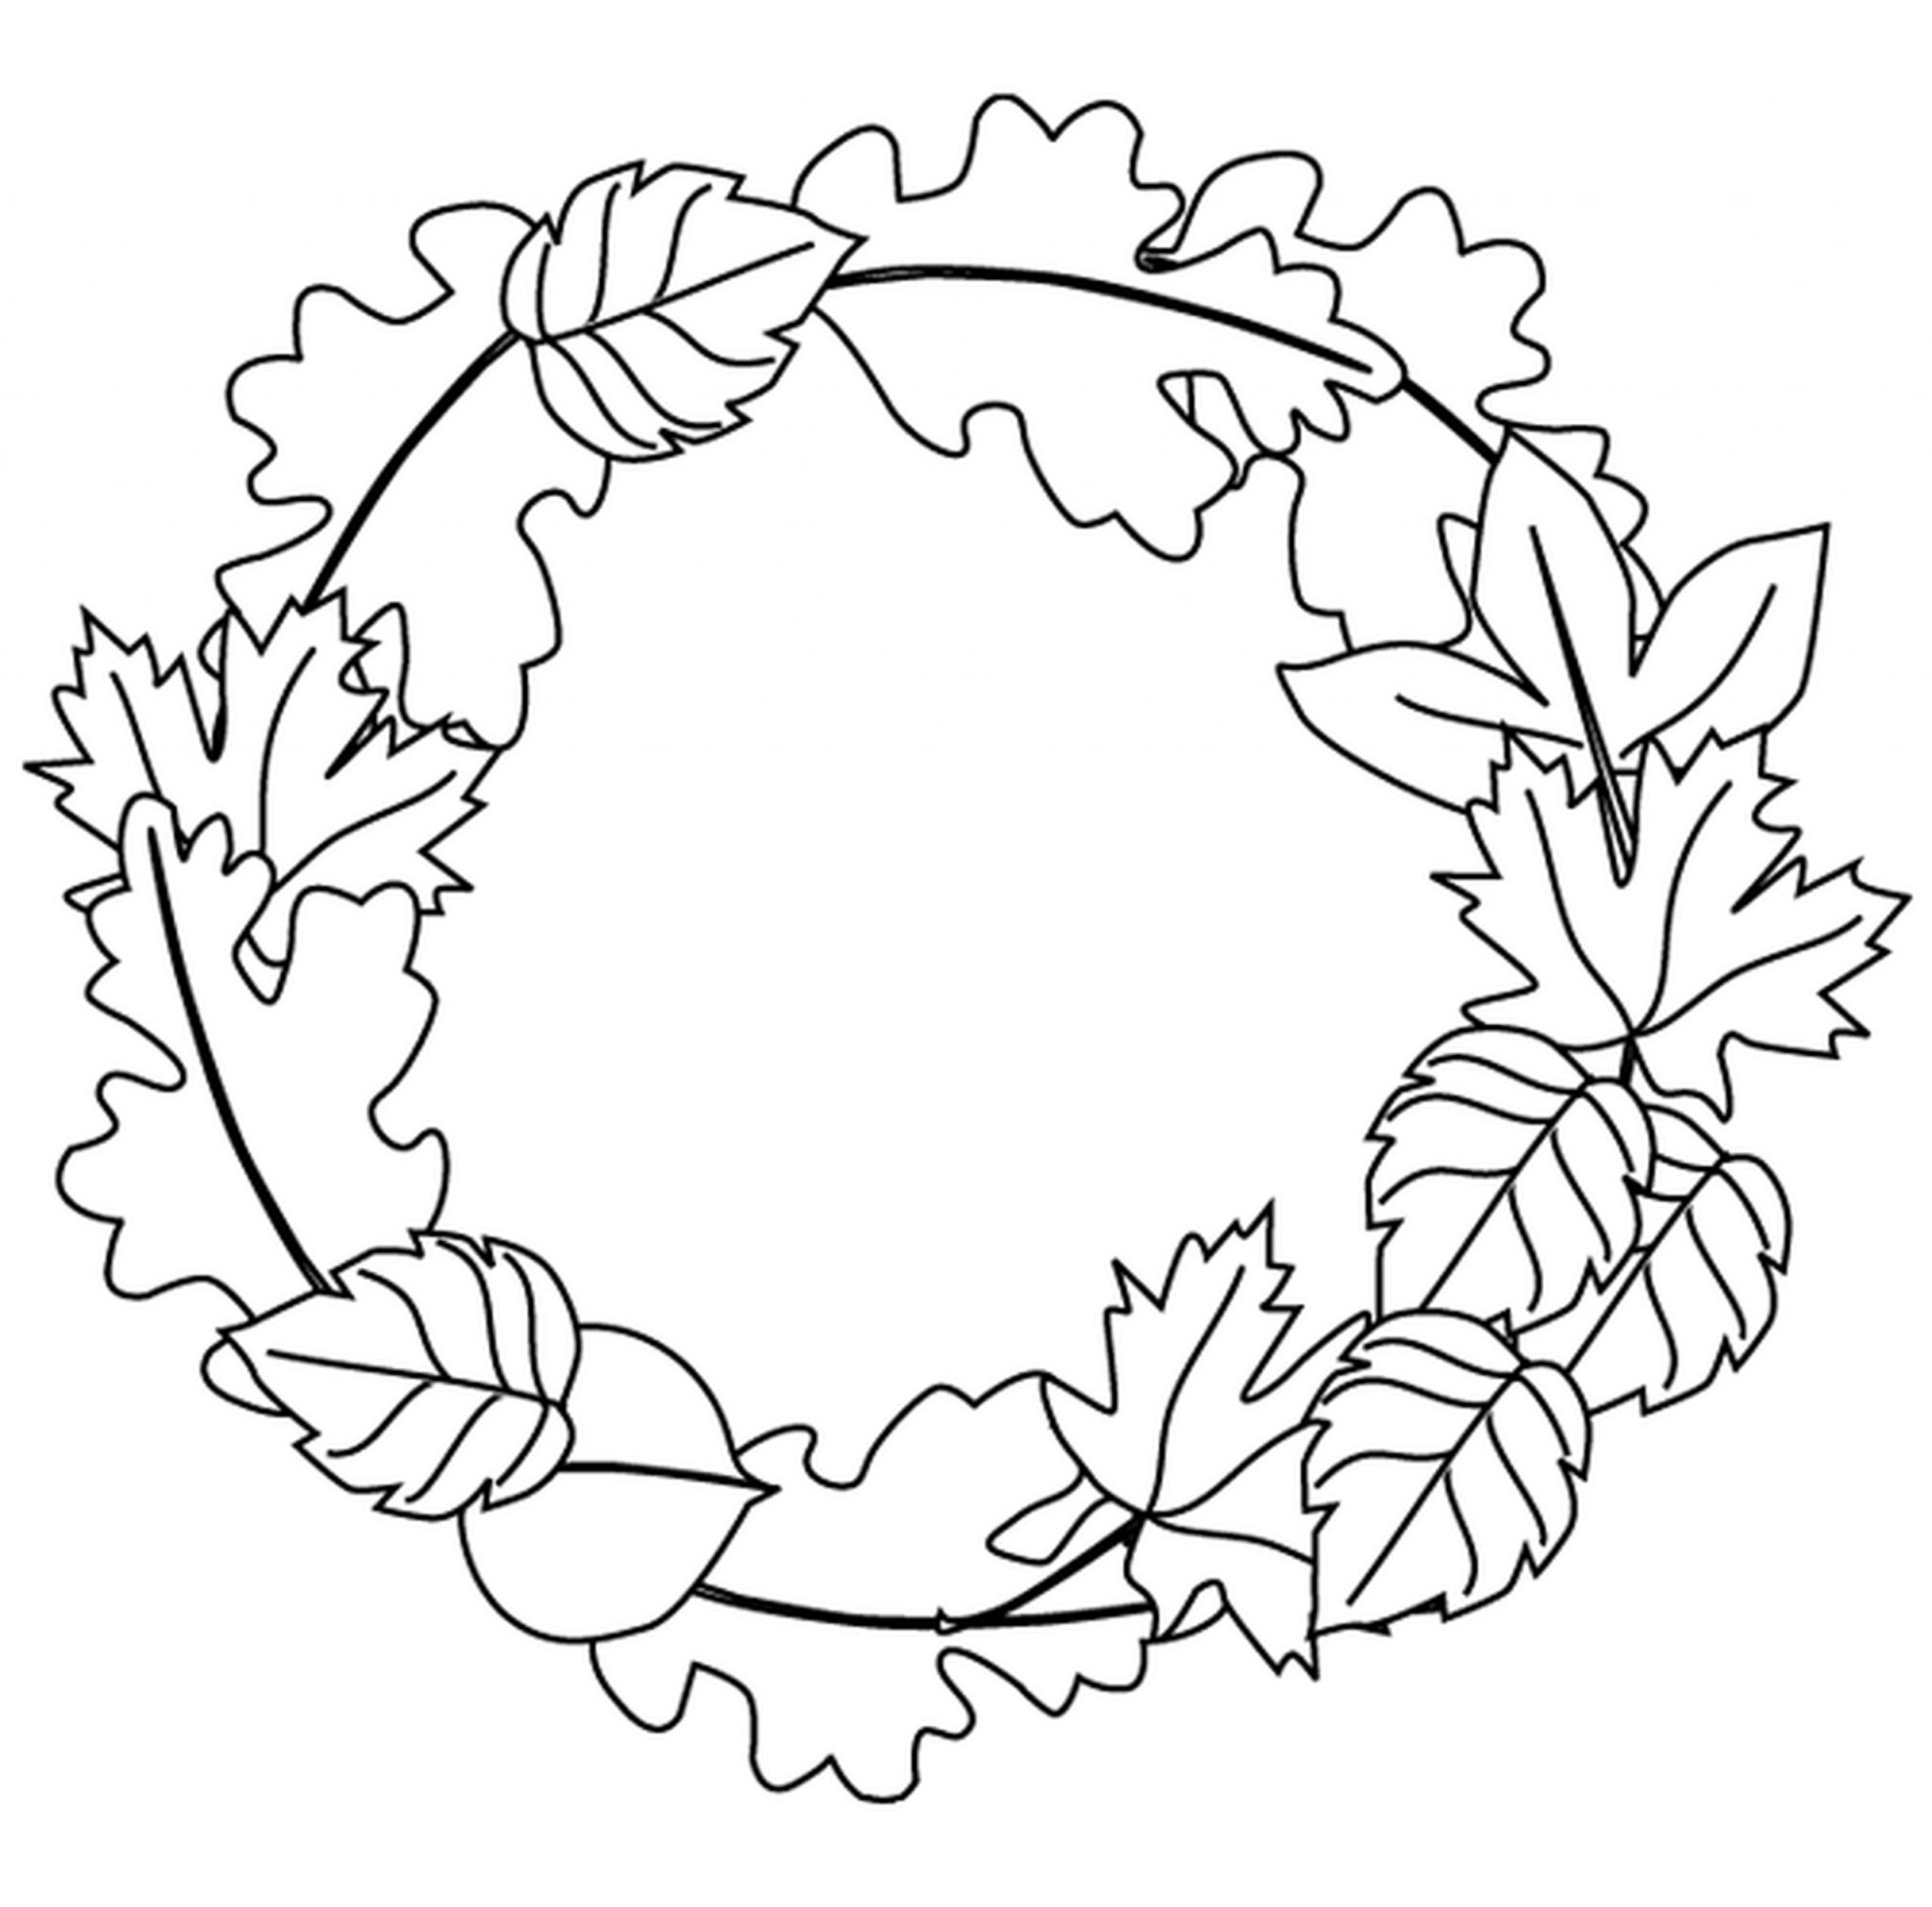 autumn leaves coloring pages autumn leaves coloring page free printable coloring pages autumn leaves coloring